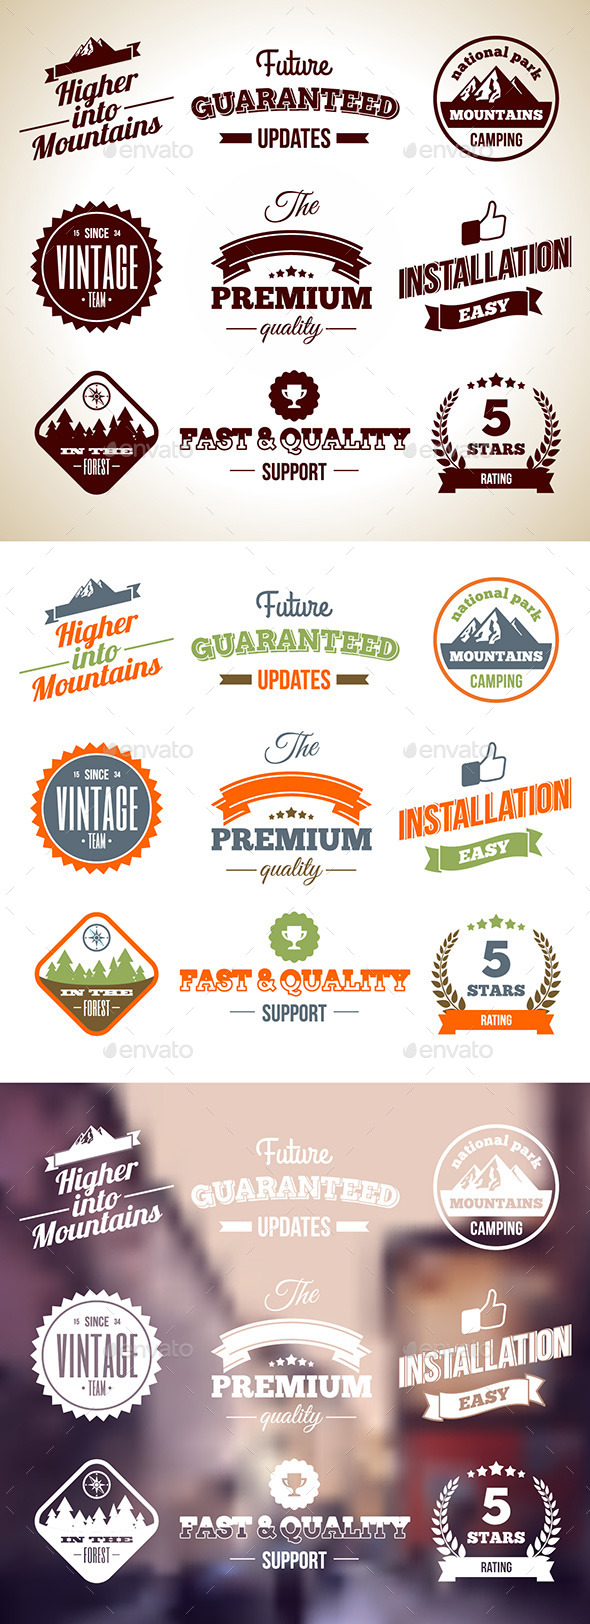 GraphicRiver Vintage Badges Premium labels Hight Quality Design Elements 5922897